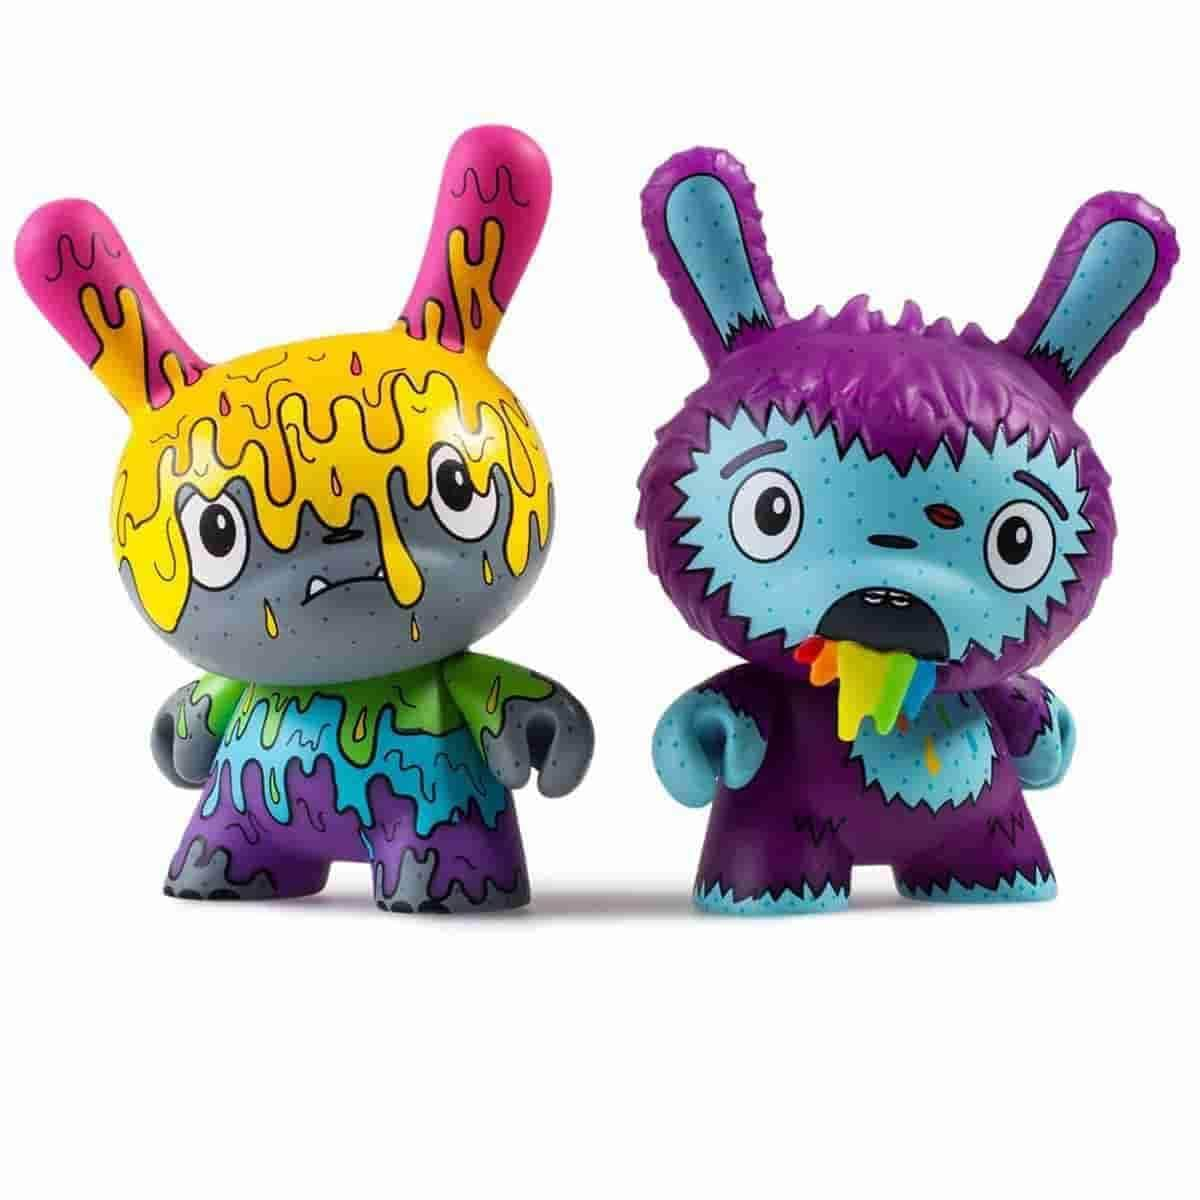 Designer Toy Awards Dunny Series 24 pc Display Case by Kidrobot x Clutter - IamRetro